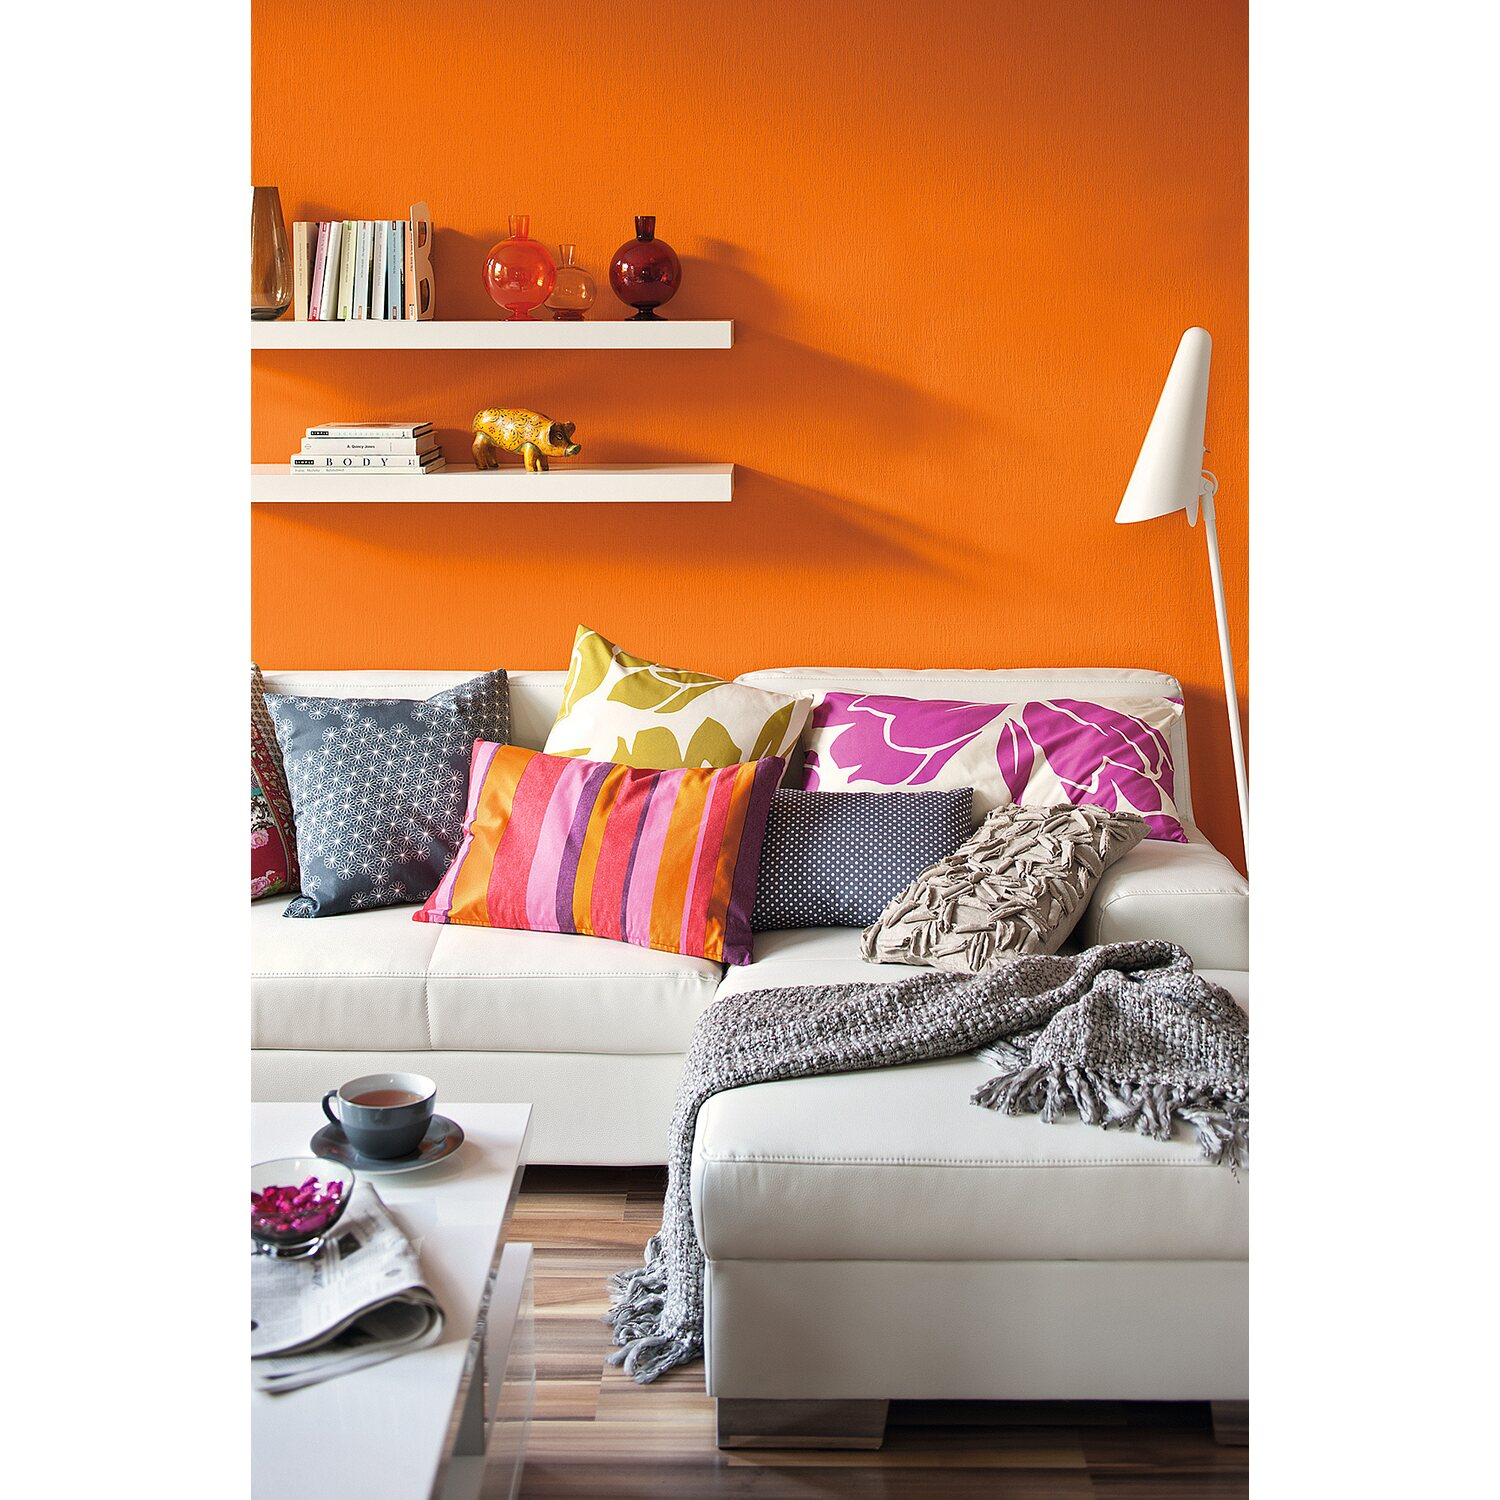 schner wohnen farbe orange elegant vollbild with schner wohnen farbe orange top bild bild with. Black Bedroom Furniture Sets. Home Design Ideas